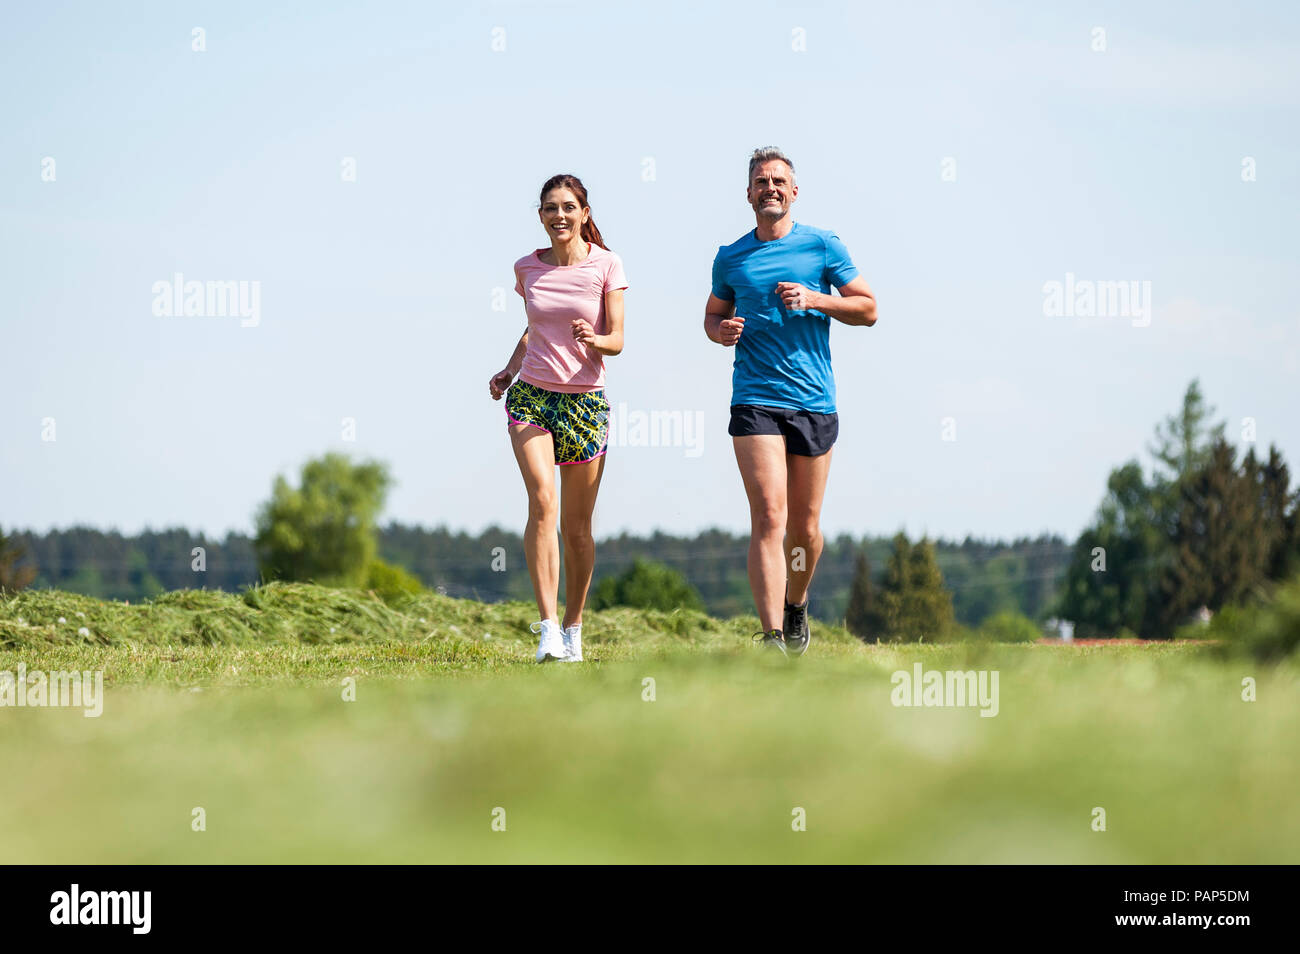 Couple running on field path - Stock Image